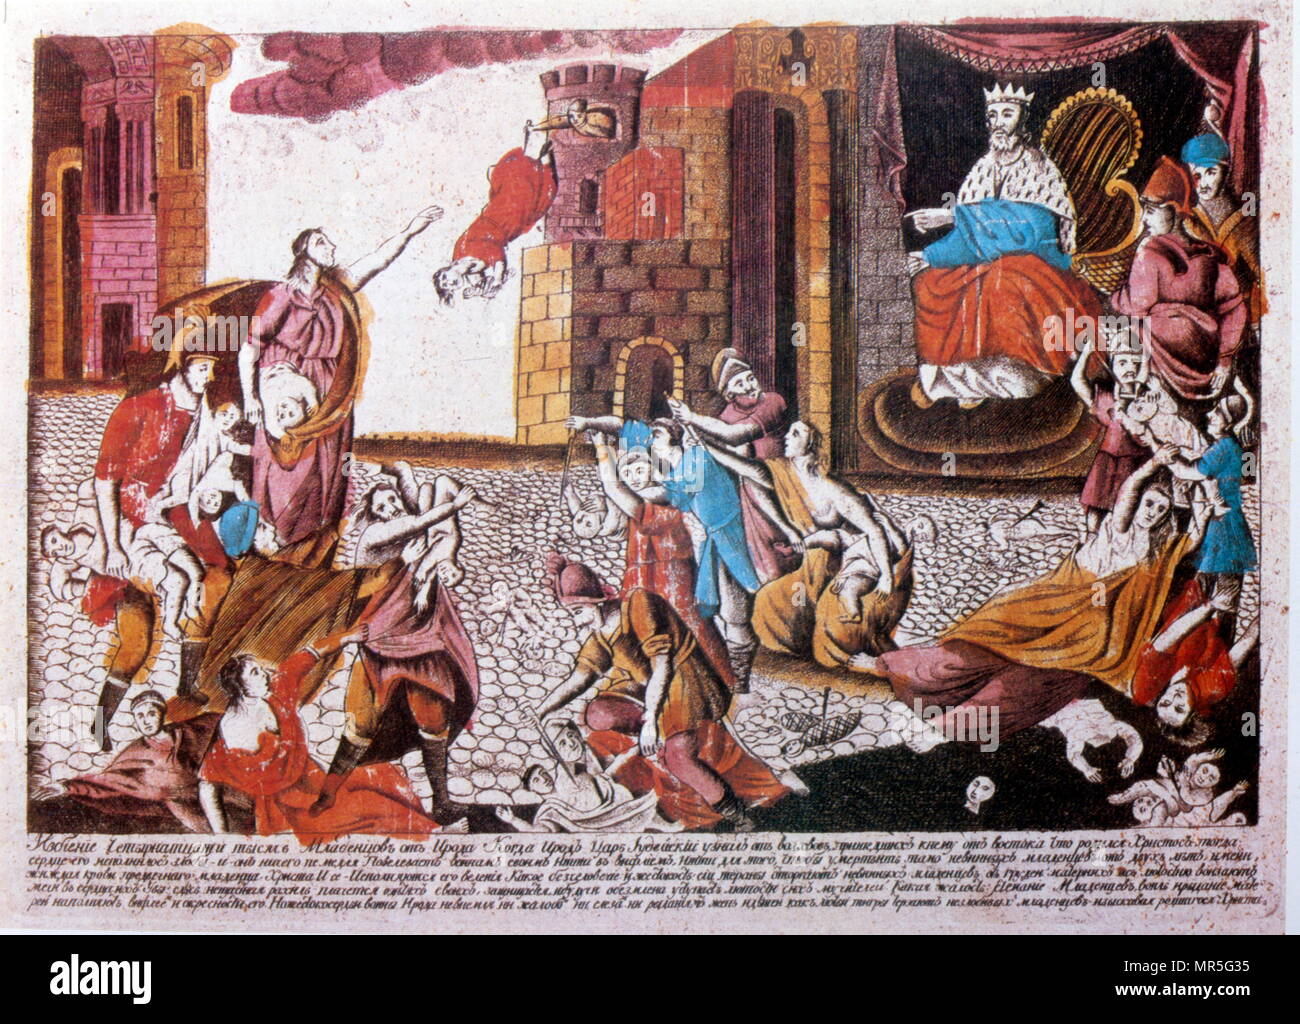 French 19th century illustration depicting the Massacre of the Innocents; the biblical account of infanticide by Herod the Great, the Roman-appointed King of the Jews Stock Photo